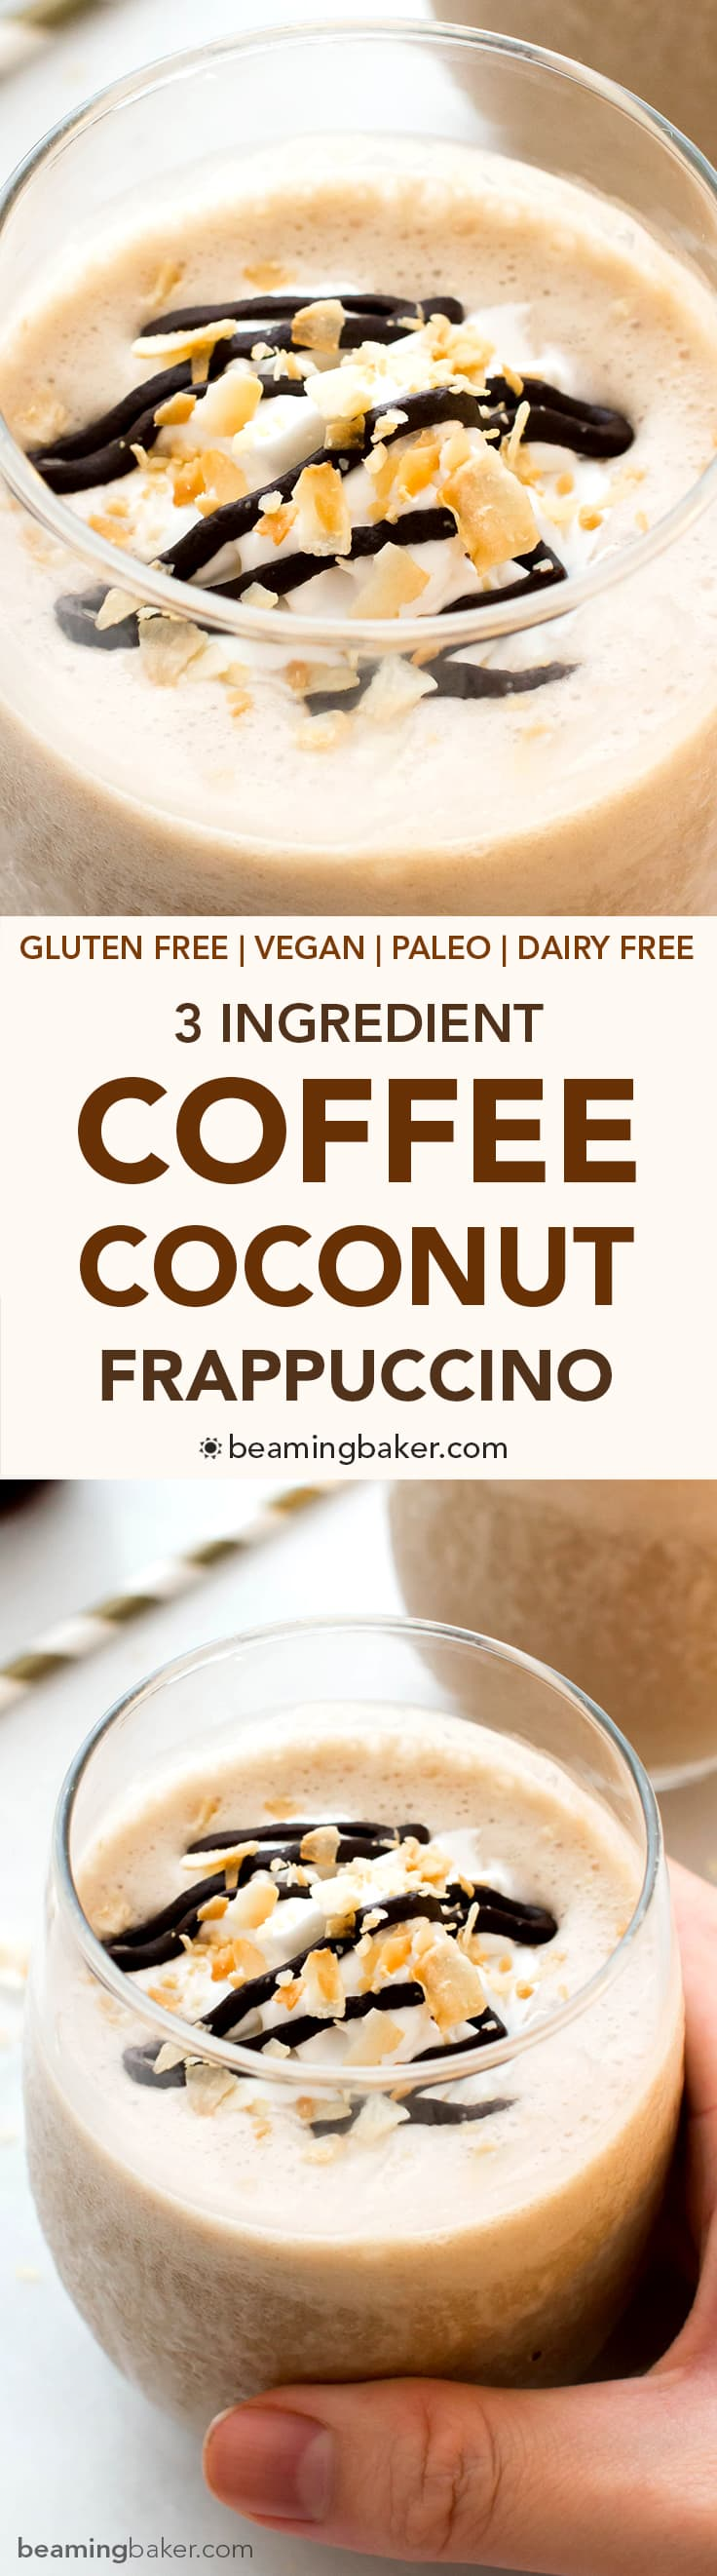 Coffee Coconut Frappuccino (V +GF): a 3 ingredient recipe for deliciously thick, creamy frappes bursting with coffee and coconut flavor. #Vegan #Paleo #GlutenFree #DairyFree | BeamingBaker.com